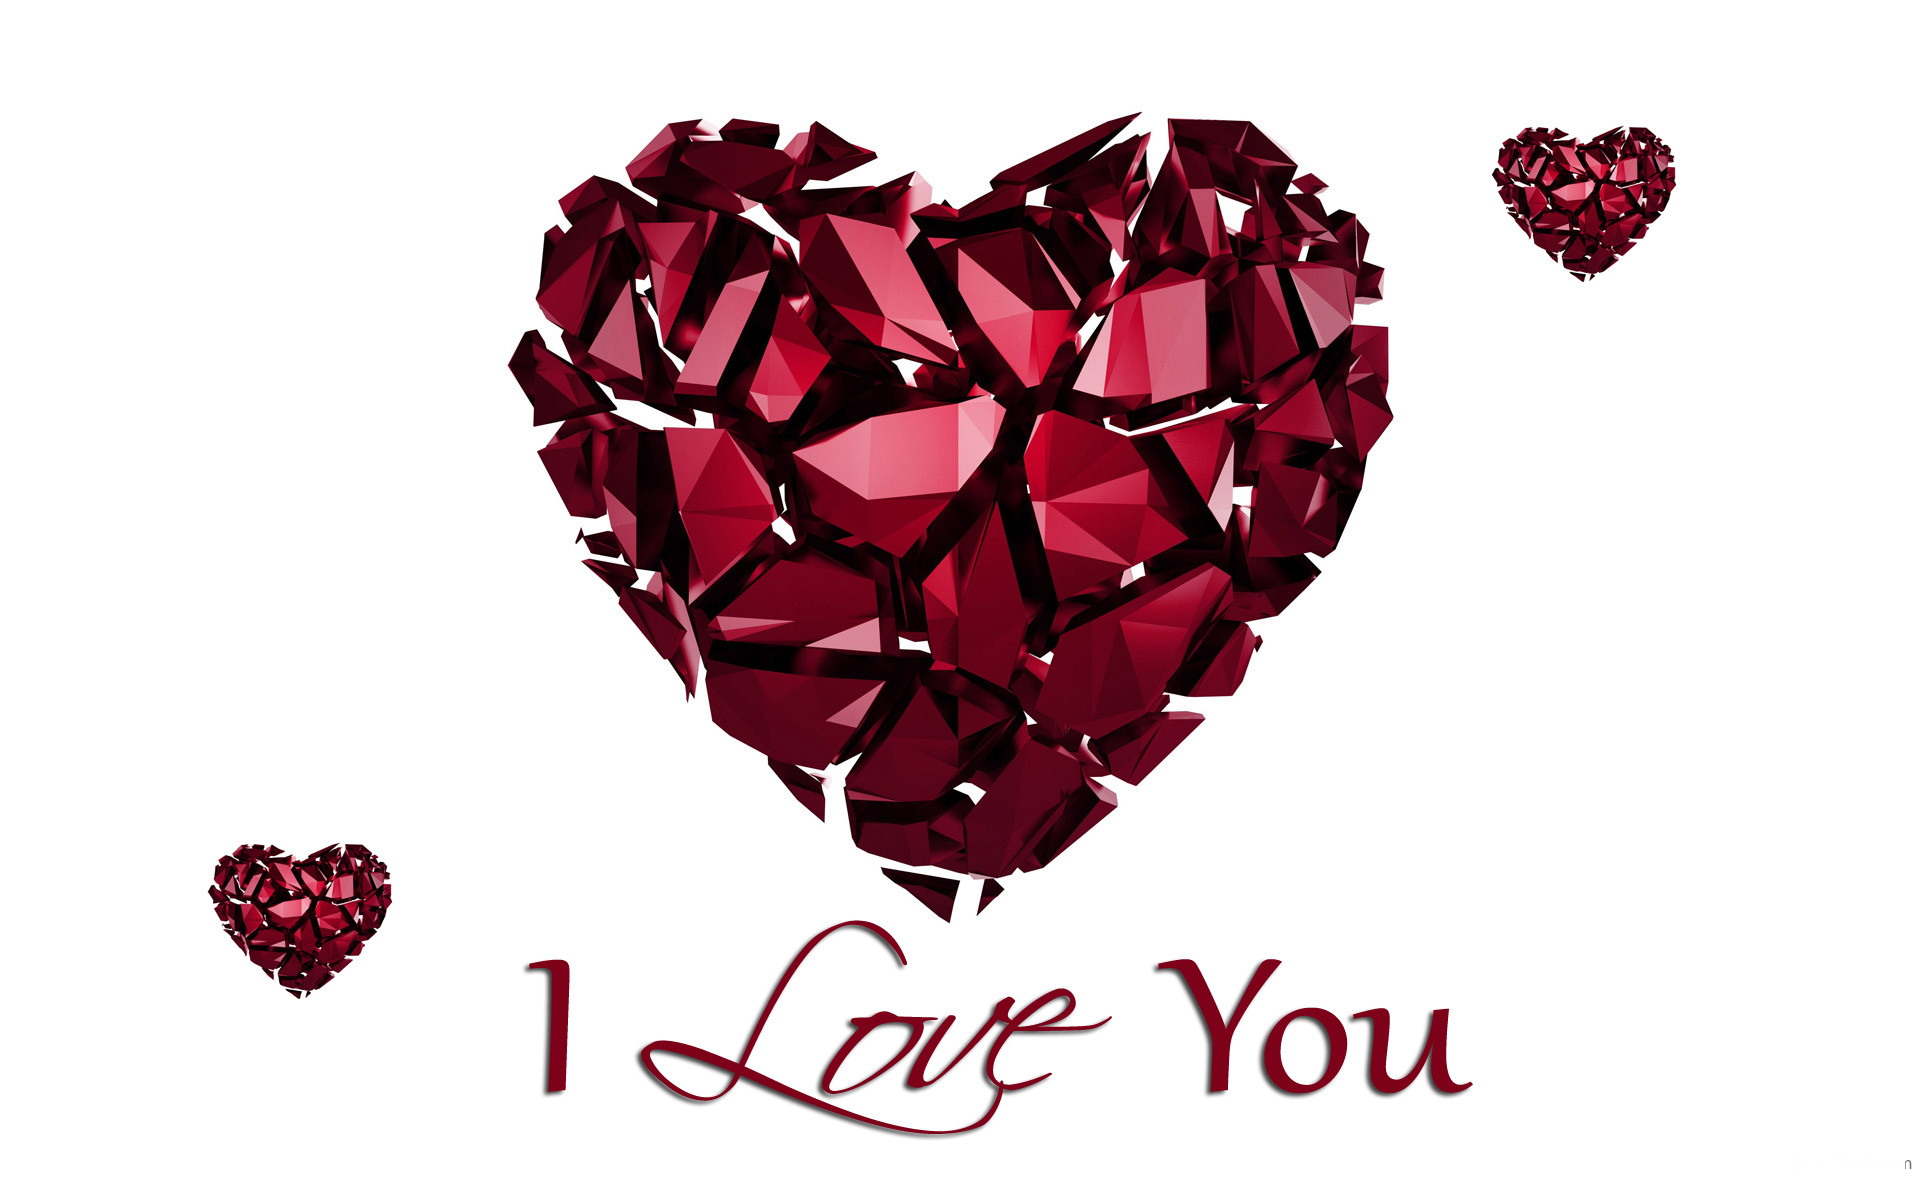 captivating i love you heart wallpaper wide i love you wallpapers wallpaper  download hd maker reddit iphone free d live